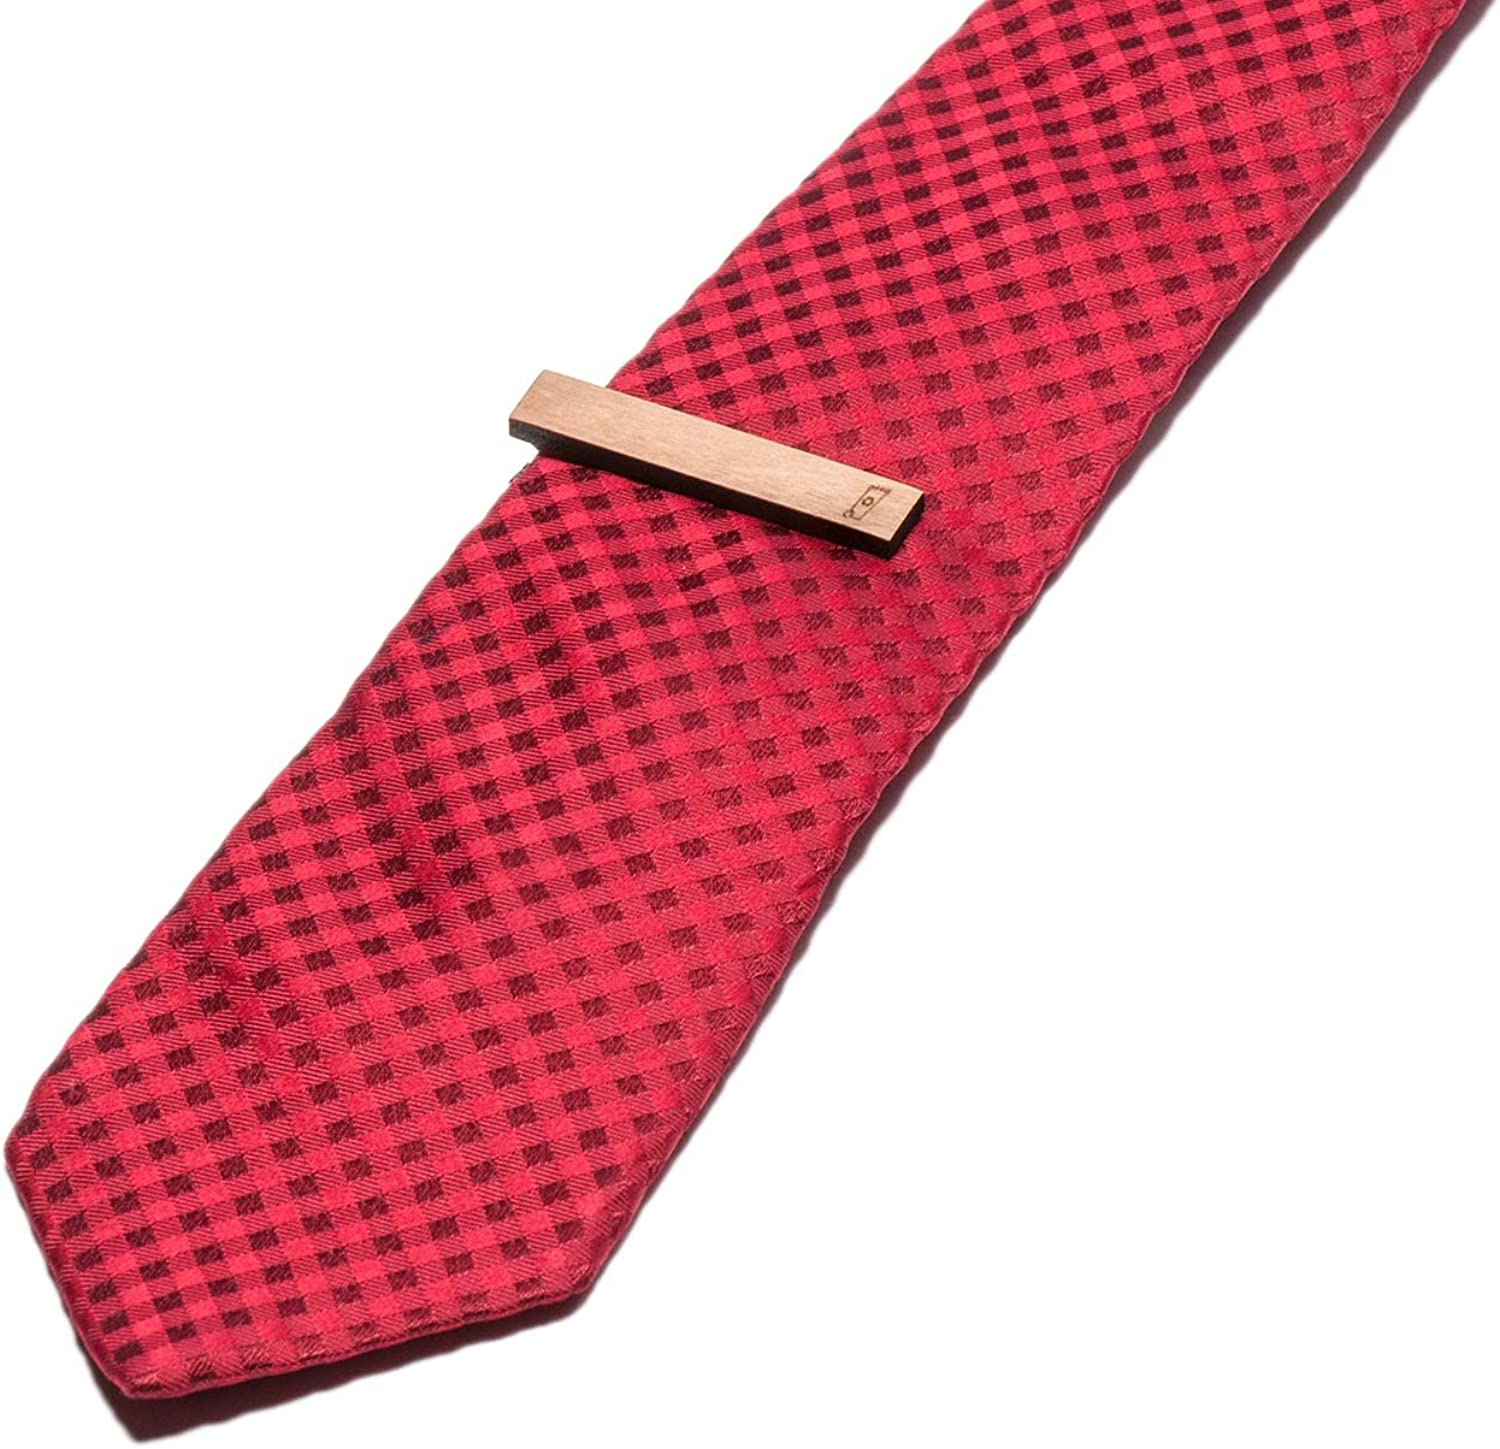 Wooden Accessories Company Wooden Tie Clips with Laser Engraved Wheelie Bin Design Cherry Wood Tie Bar Engraved in The USA